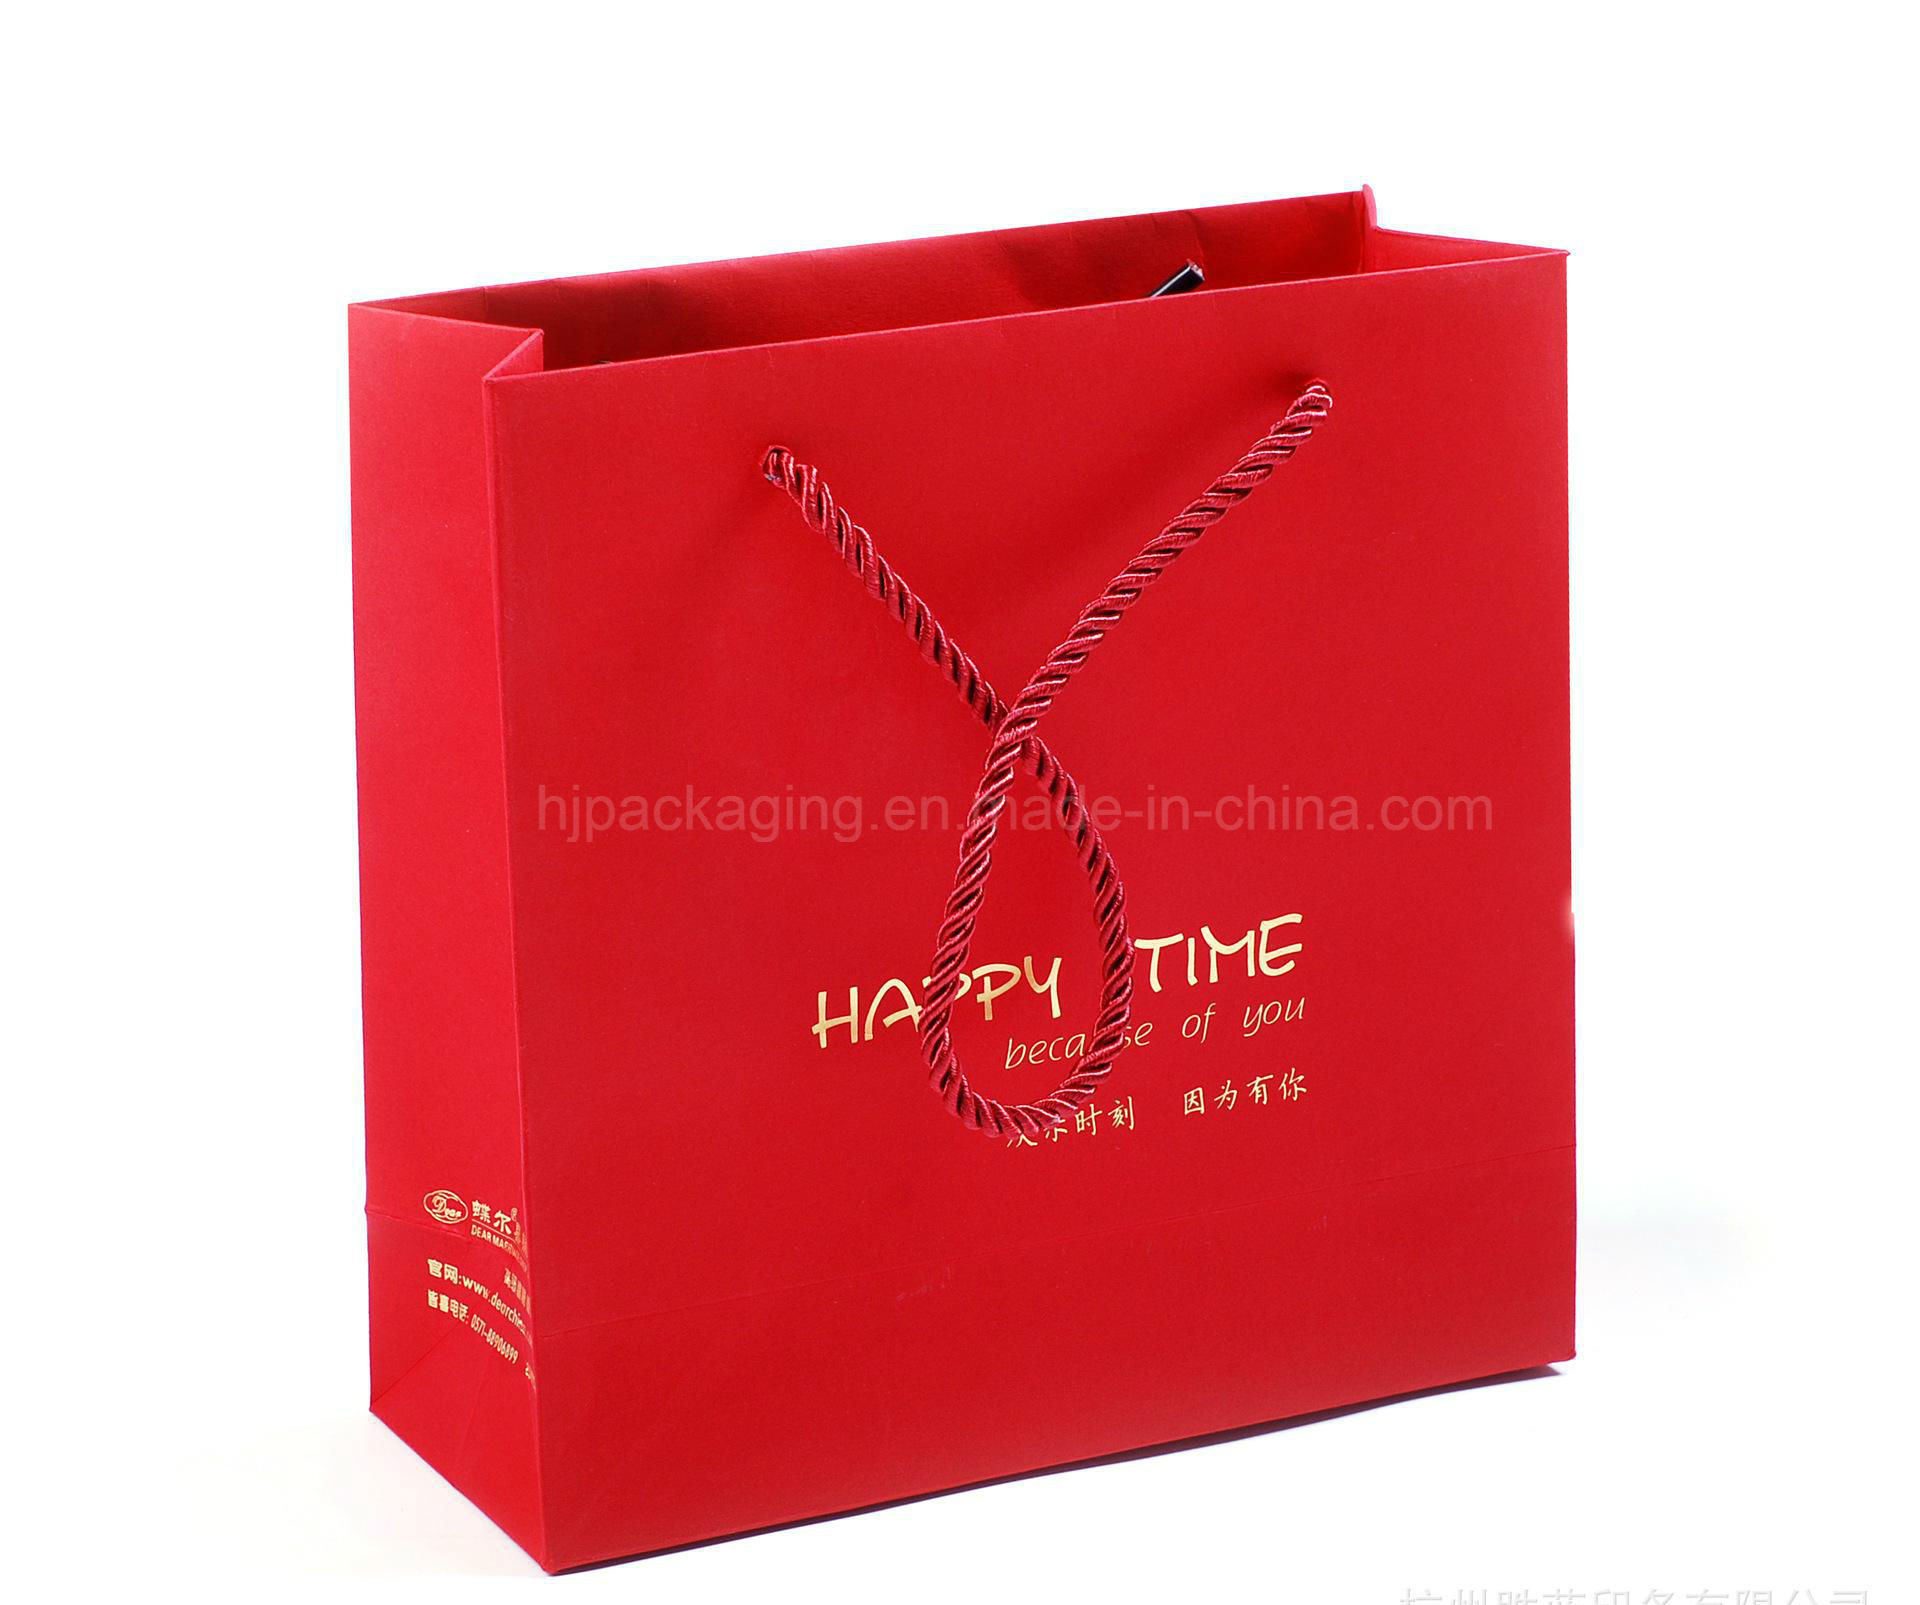 Paper Gift Bags Wholesale Hot Item Customized Logo Silver Hot Stamping Logo Luxury Paper Gift Bags Wholesale Paper Bag Printing With Silk Handle